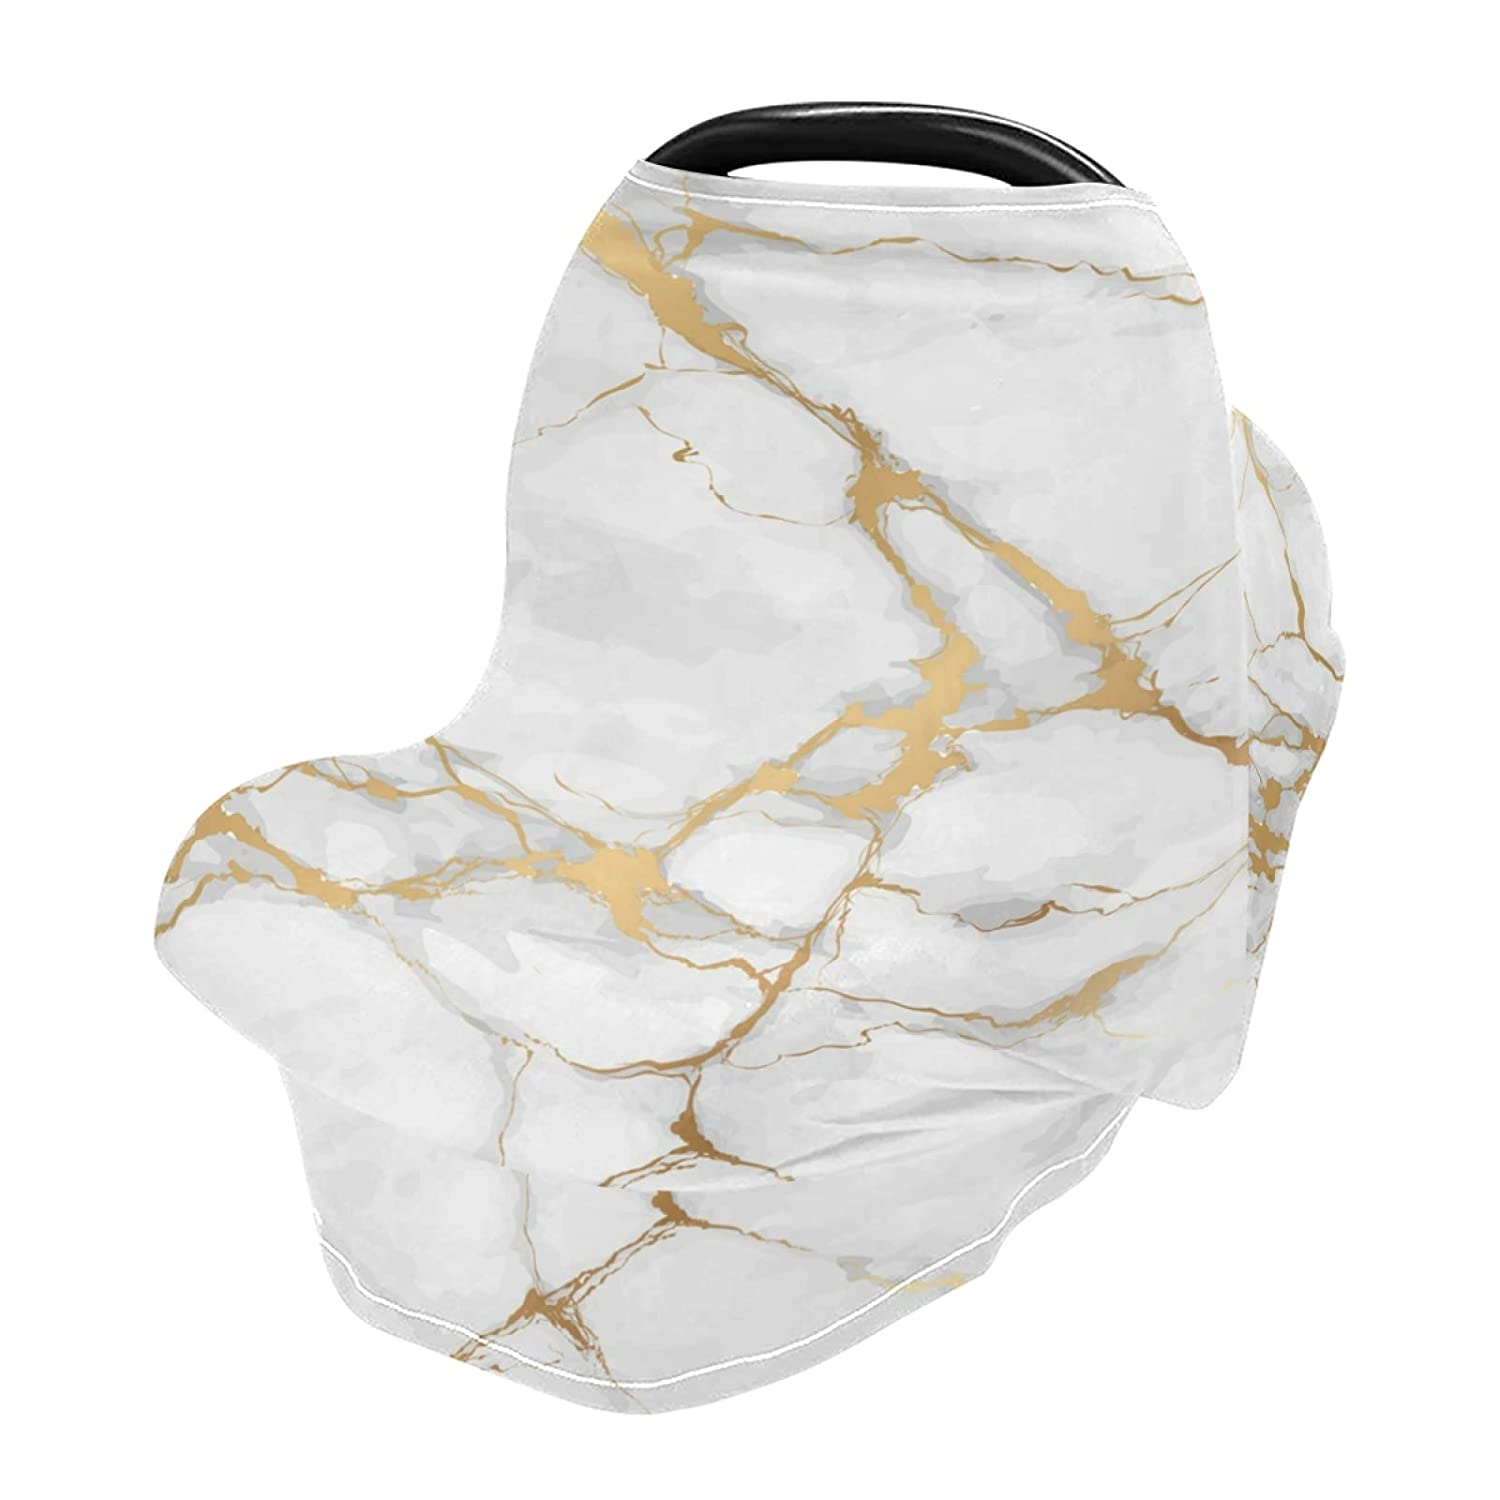 New color WELLDAY Baby Car Seat Covers Golden Max 45% OFF Marble Texture Brea Stretchy